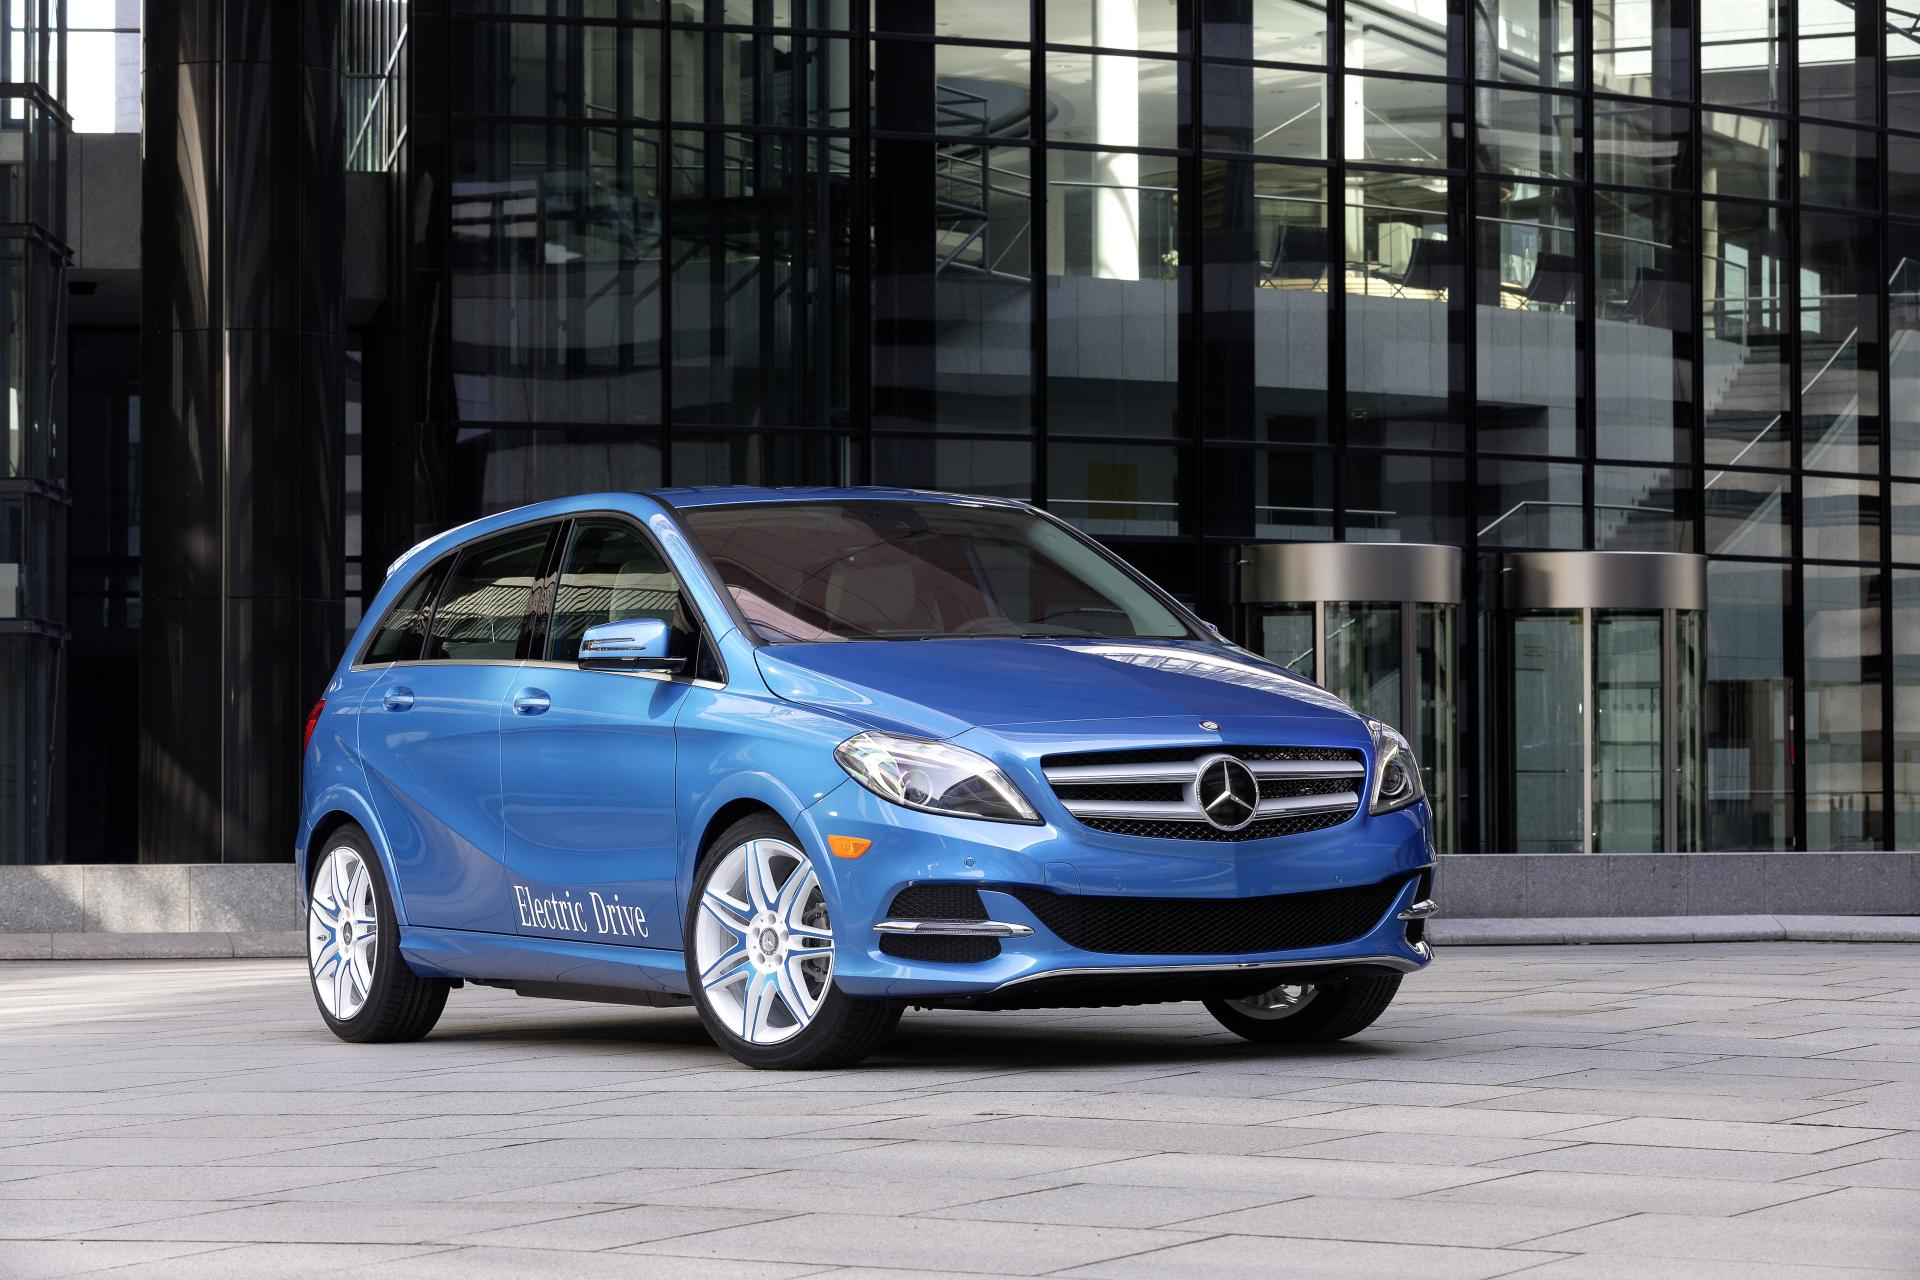 Electric Cars Information 2014 Mercedes Benz B Class Electric Drive News And Information